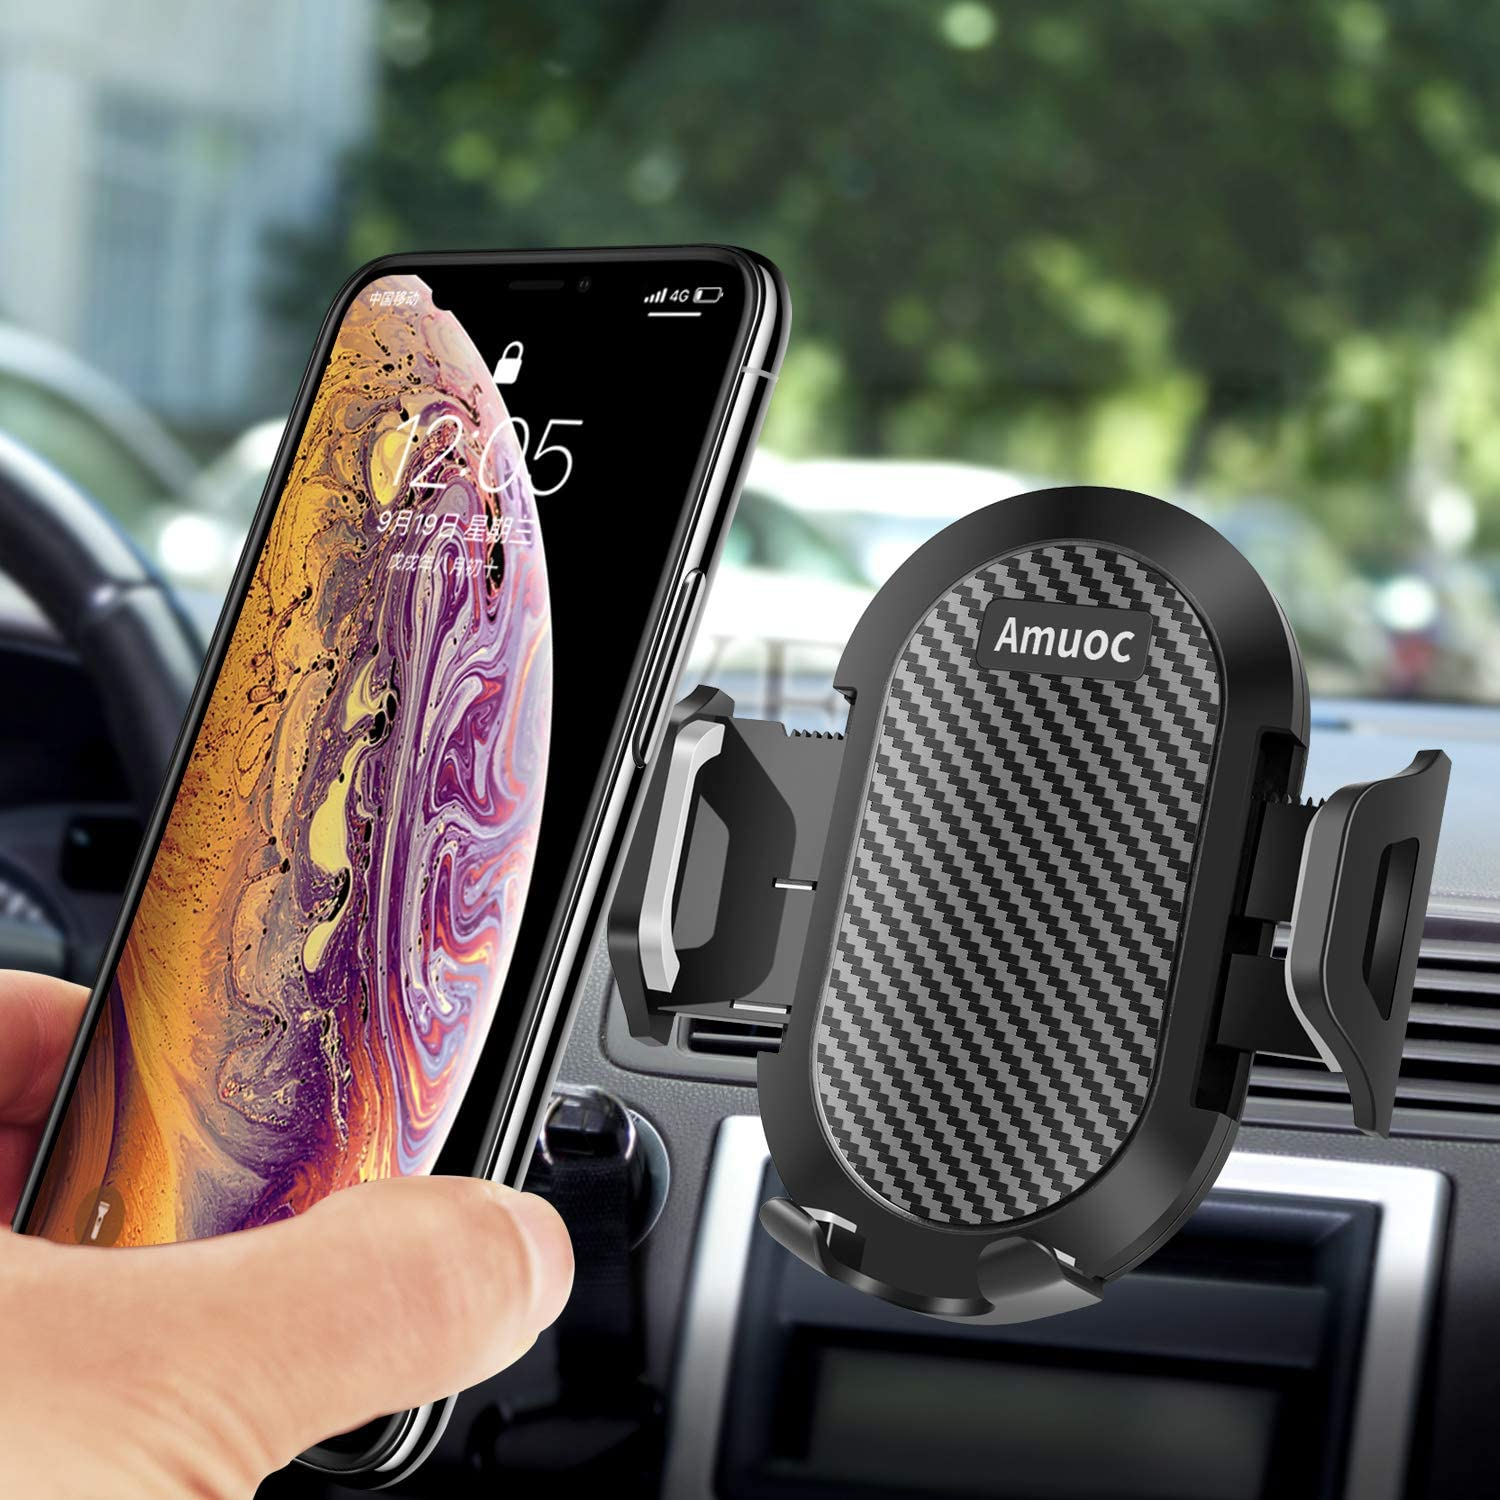 Samsung Black Anti-Slip Desk Phone Stand Compatible with iPhone Amuoc Car Mount GPS Devices and More. Android Smartphones Car Phone Mount Silicone Car Pad Mat for Various Dashboards